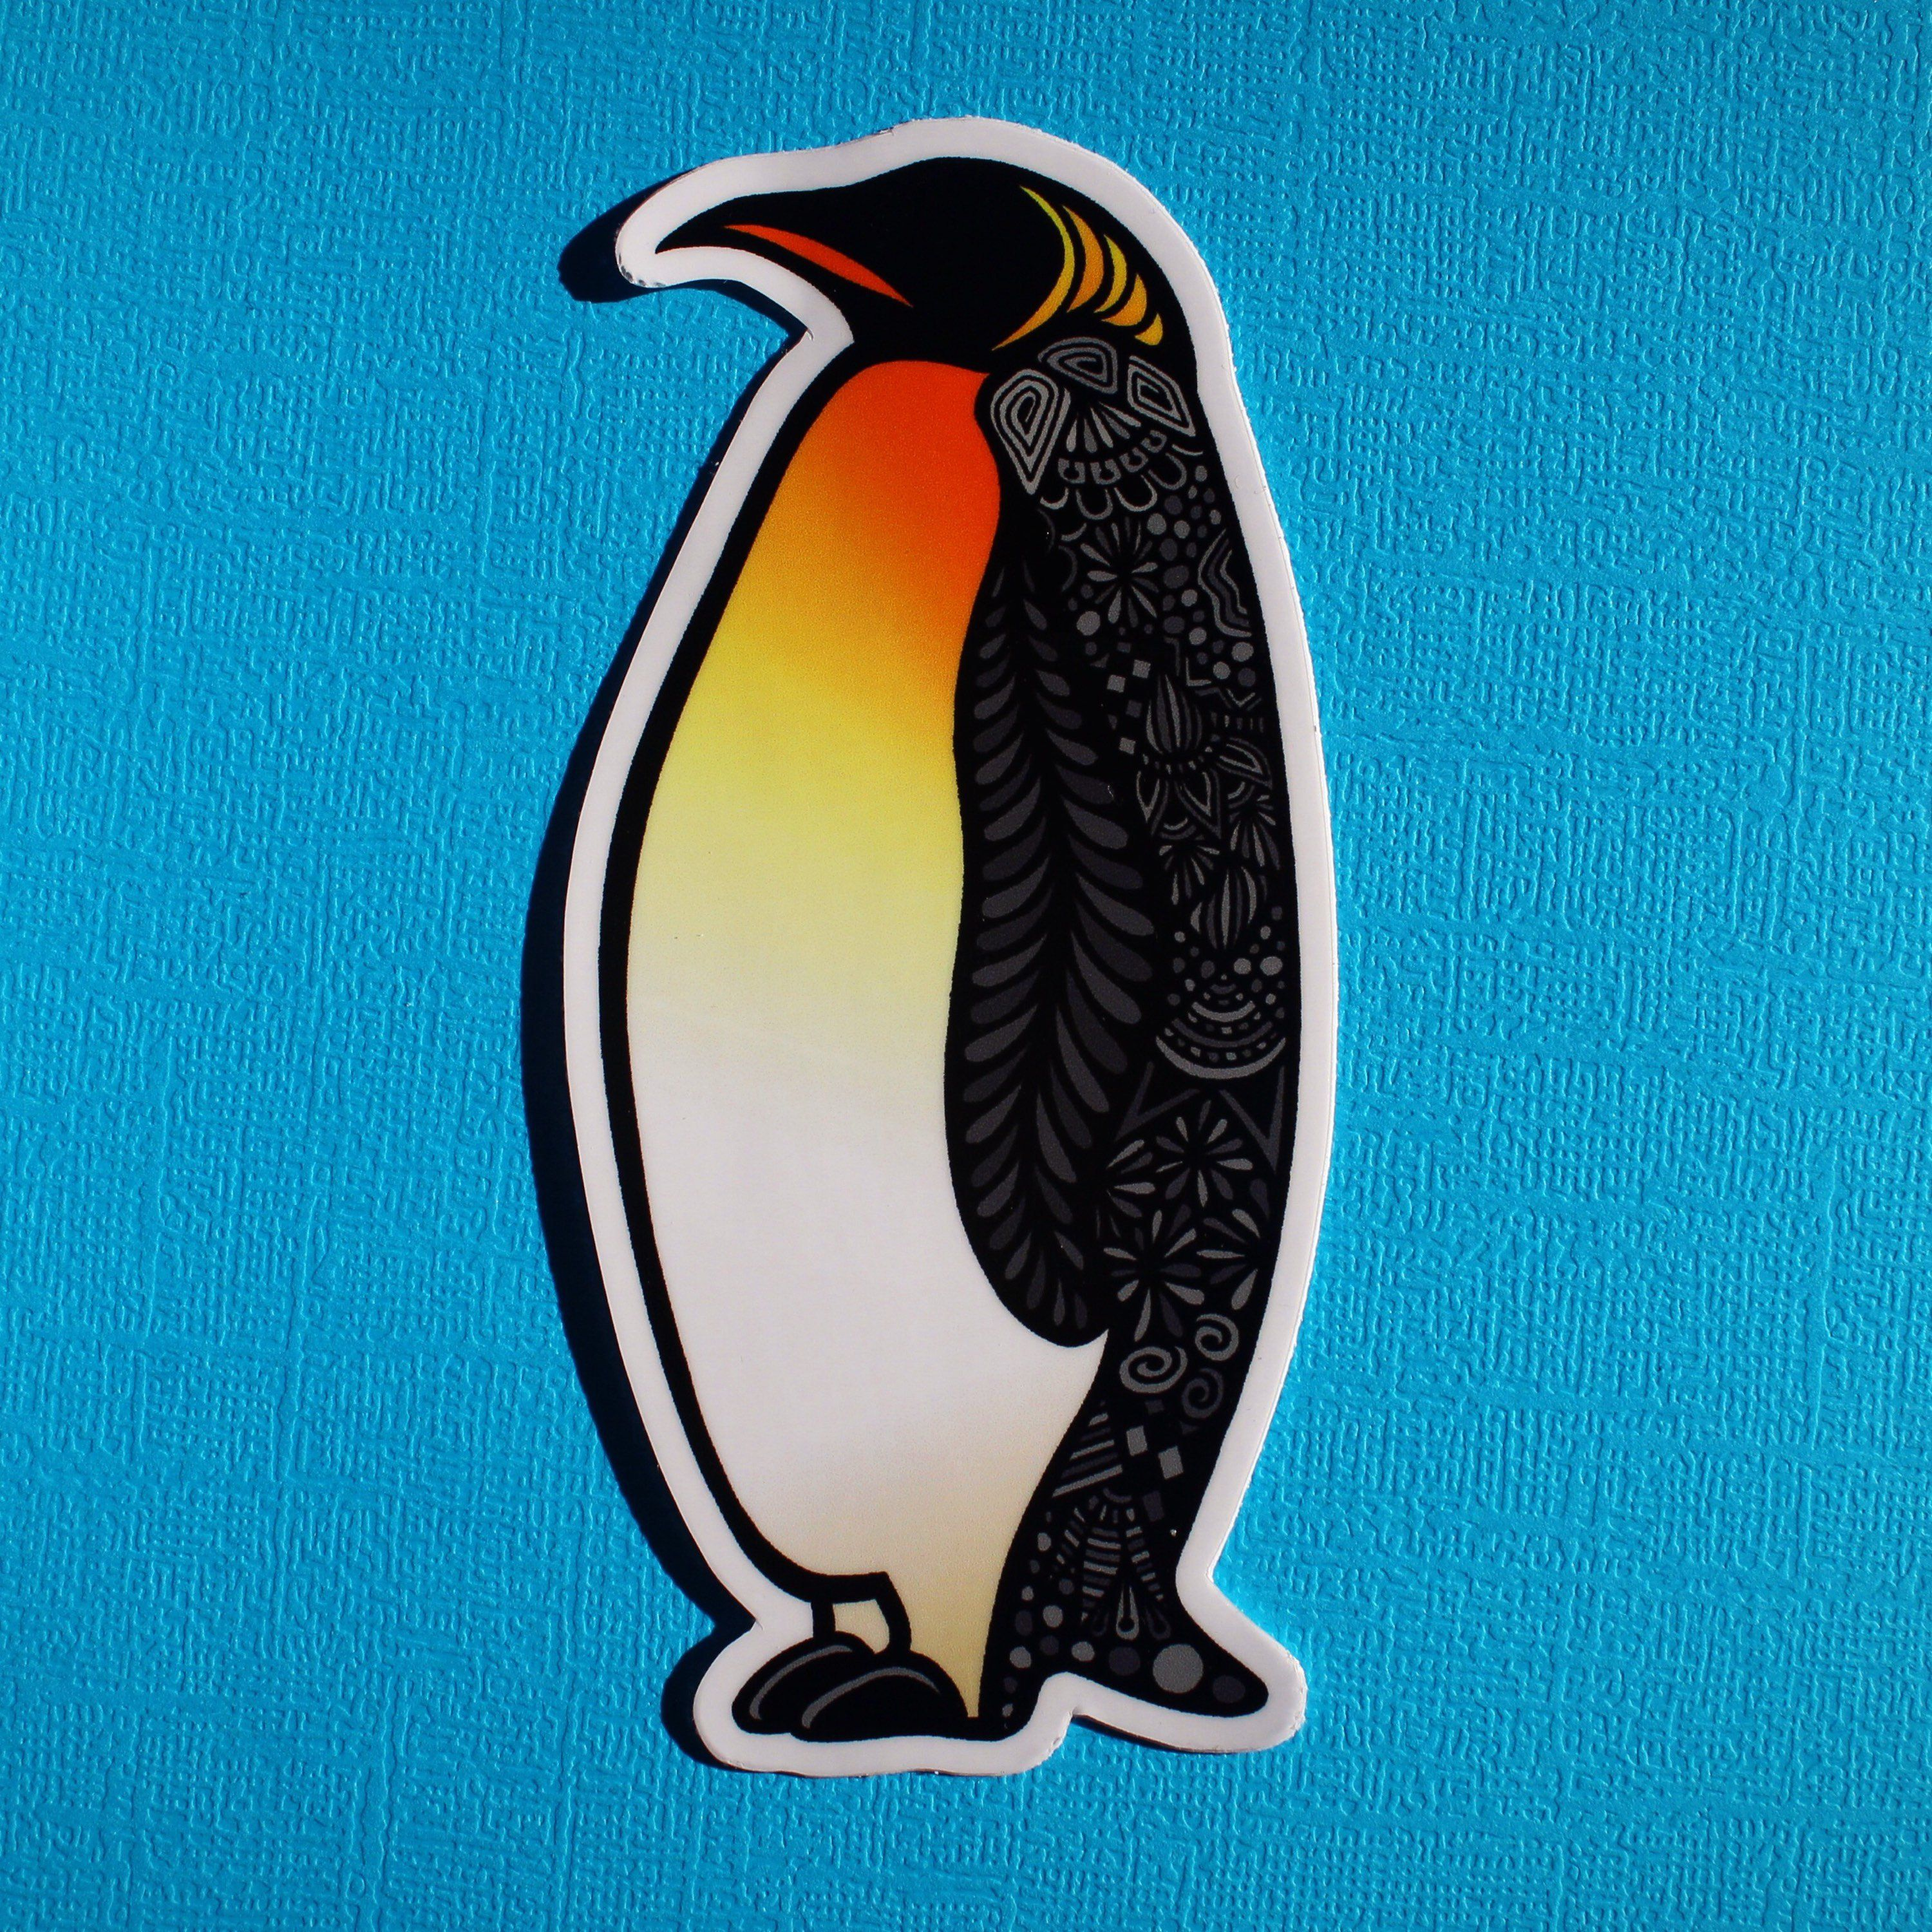 Penguin Waterproof Sticker Hydroflask Aesthetic Laptop Hydro Painting How To Draw Hands Waterproof Stickers